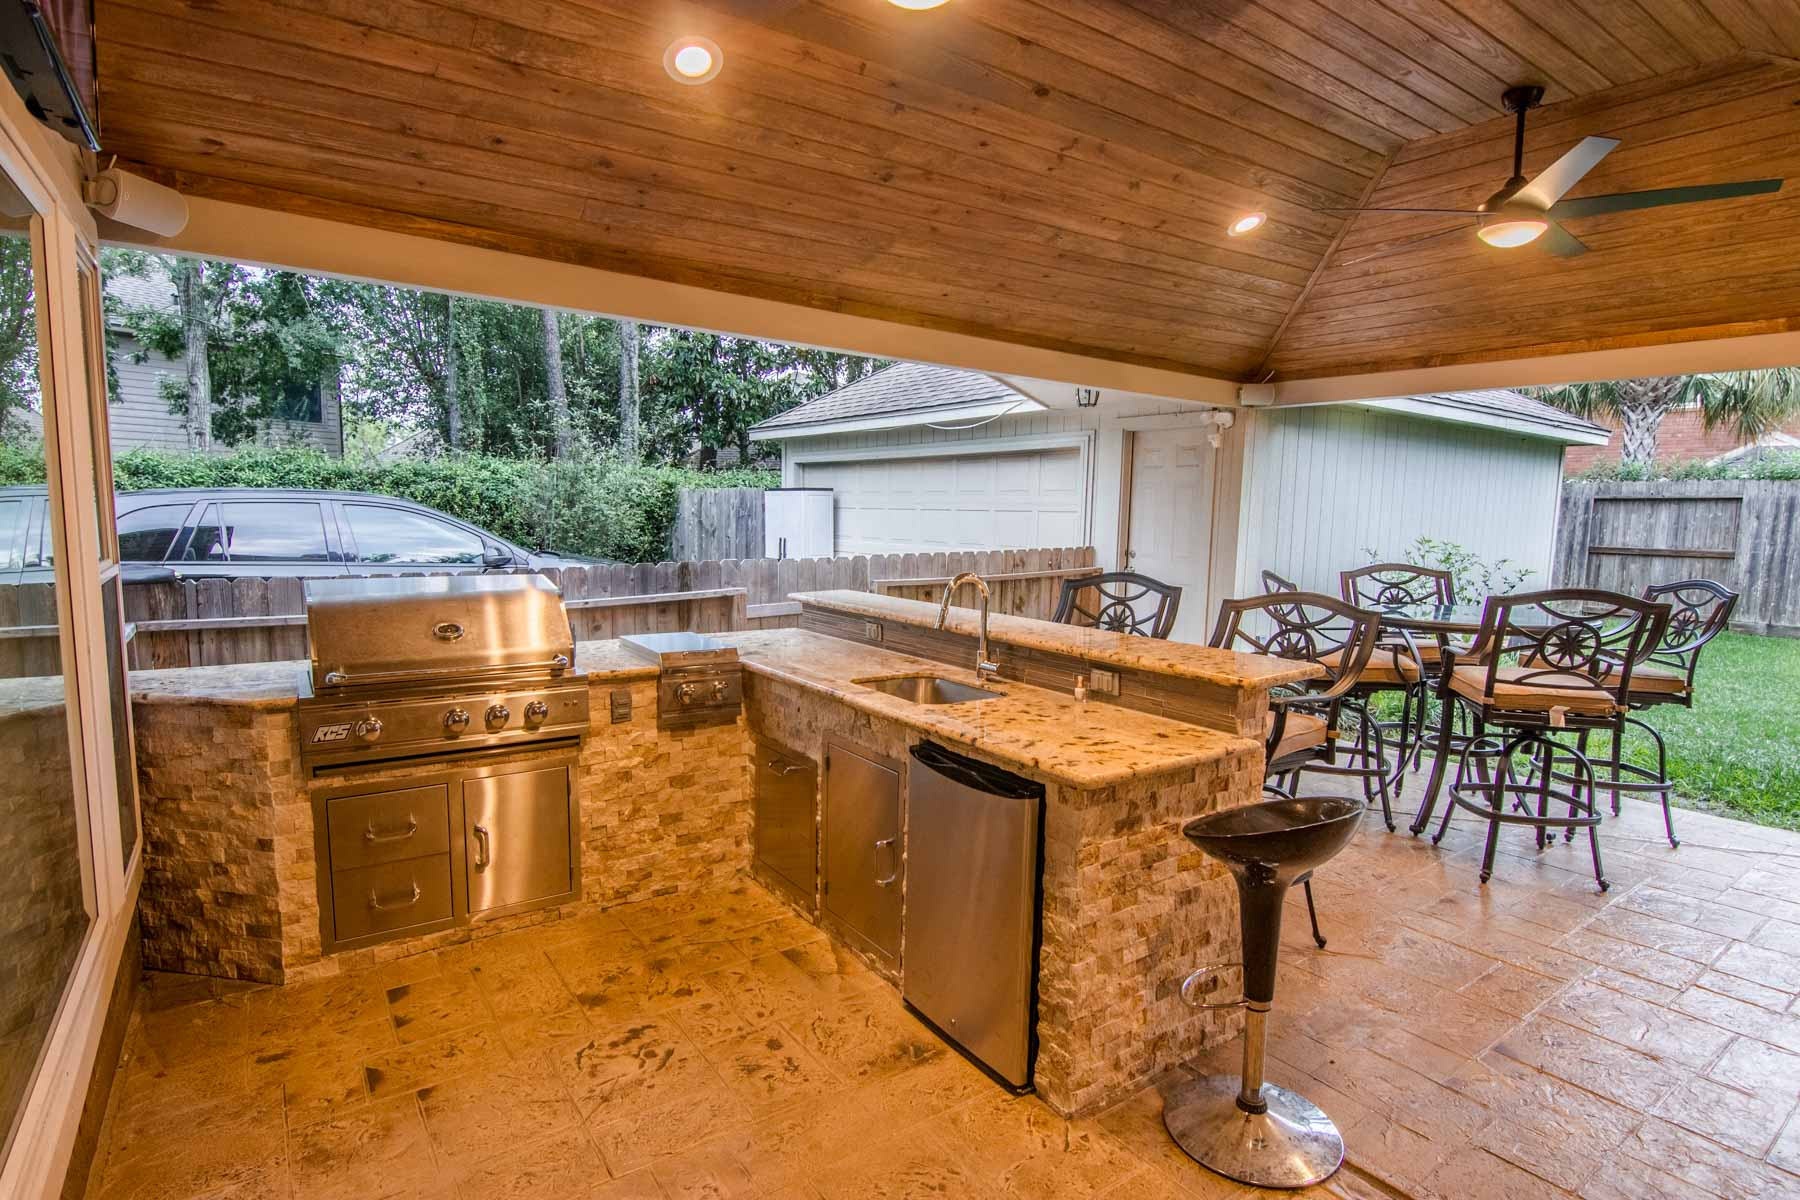 backyard kitchens narrow kitchen tables outdoor - hhi patio covers houston